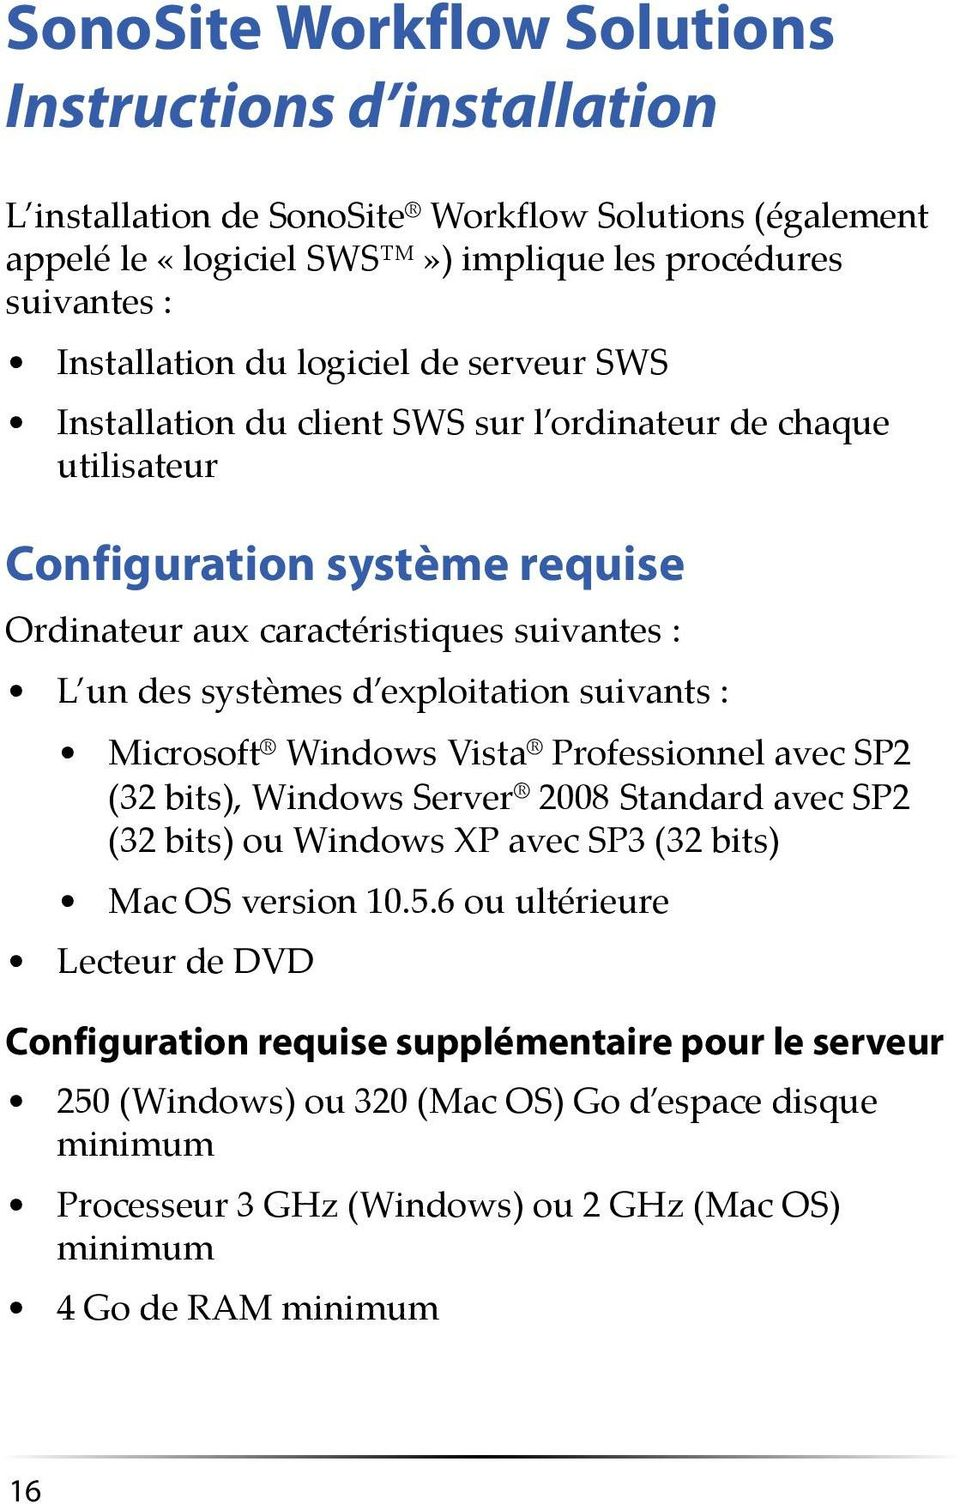 exploitation suivants : Microsoft Windows Vista Professionnel avec SP2 (32 bits), Windows Server 2008 Standard avec SP2 (32 bits) ou Windows XP avec SP3 (32 bits) Mac OS version 10.5.